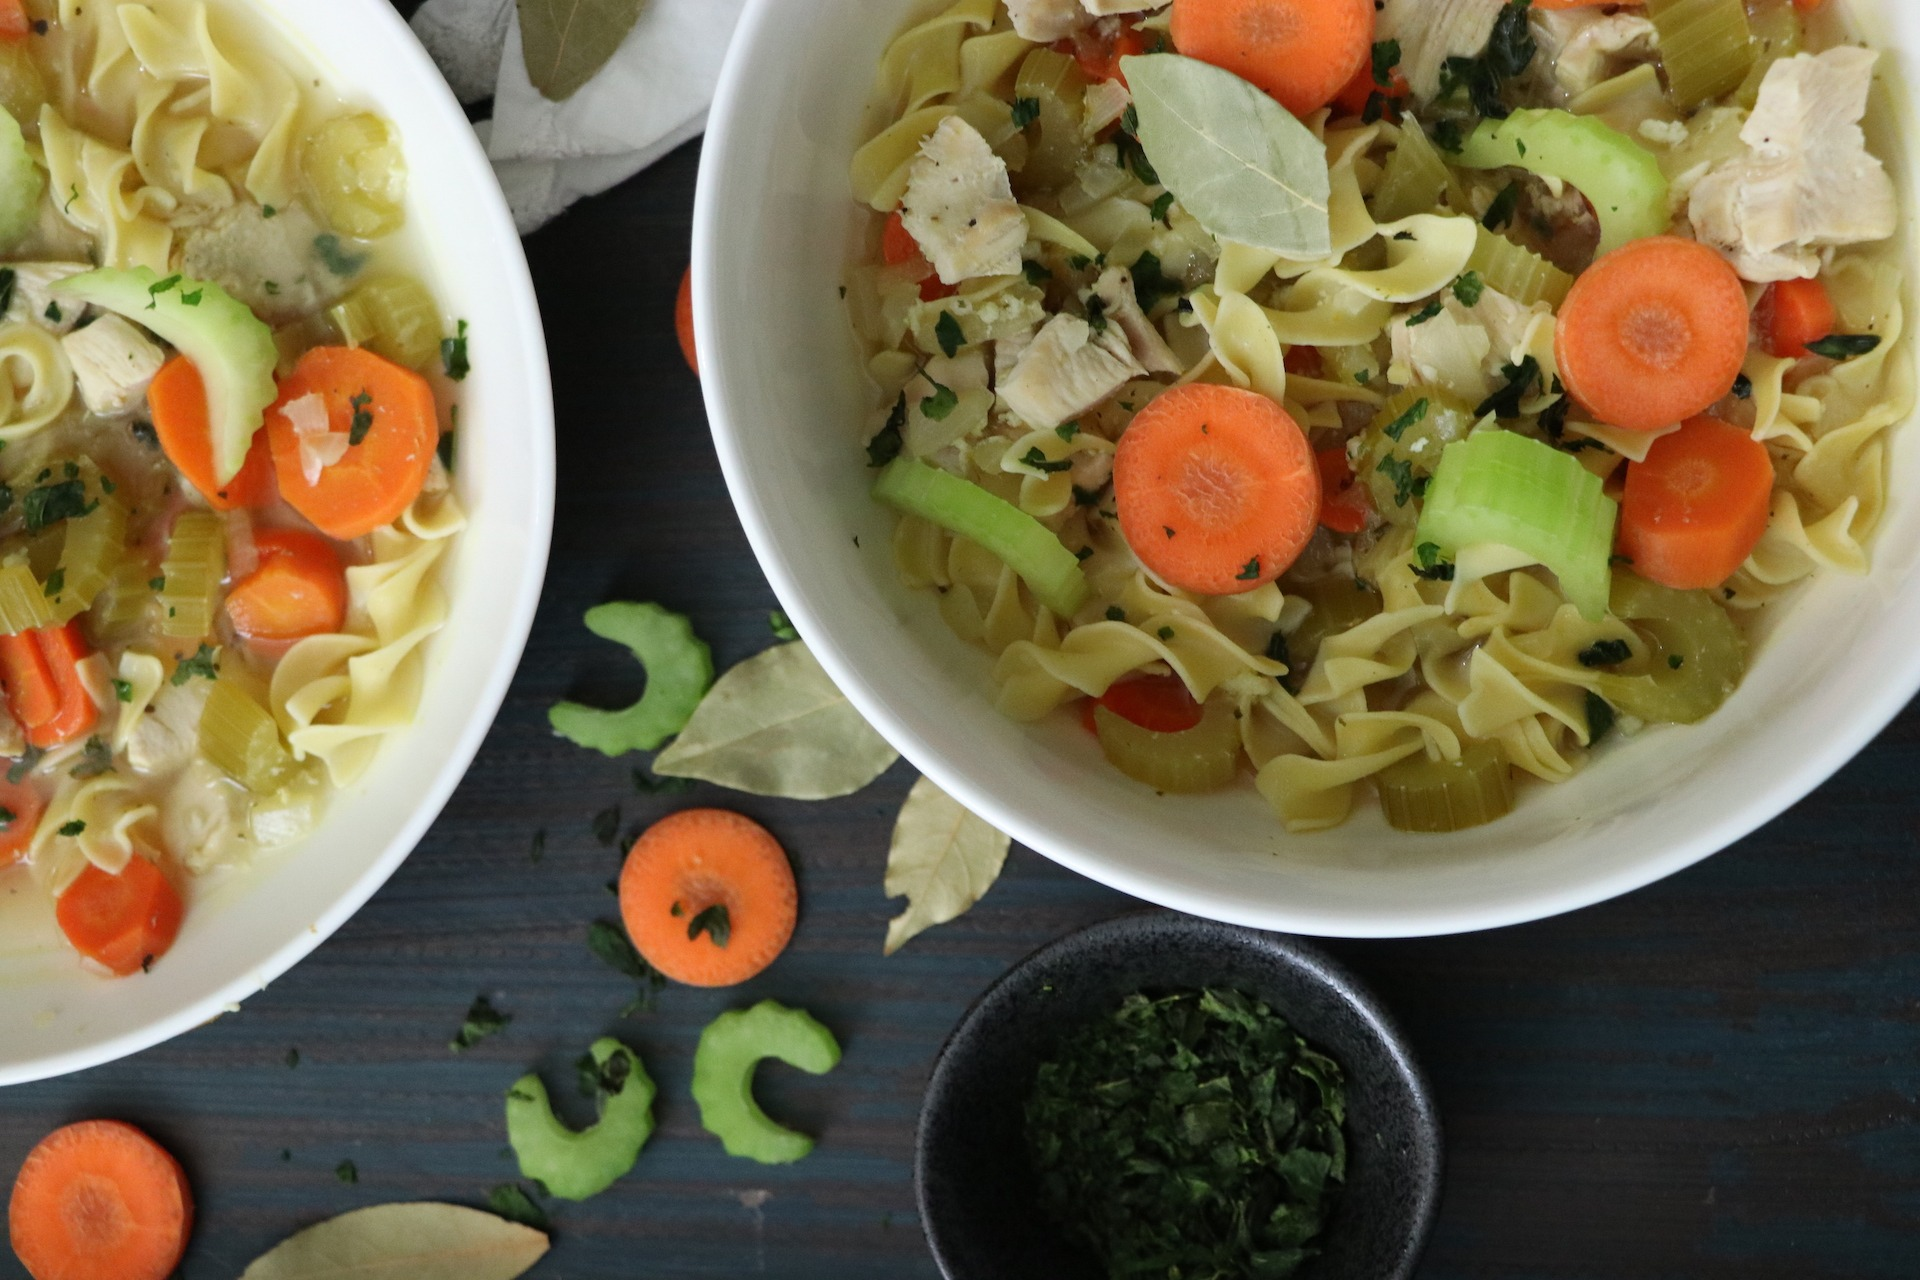 Homemade Chicken Noodle Soup Recipe | Best Healthy Recipe From Scratch